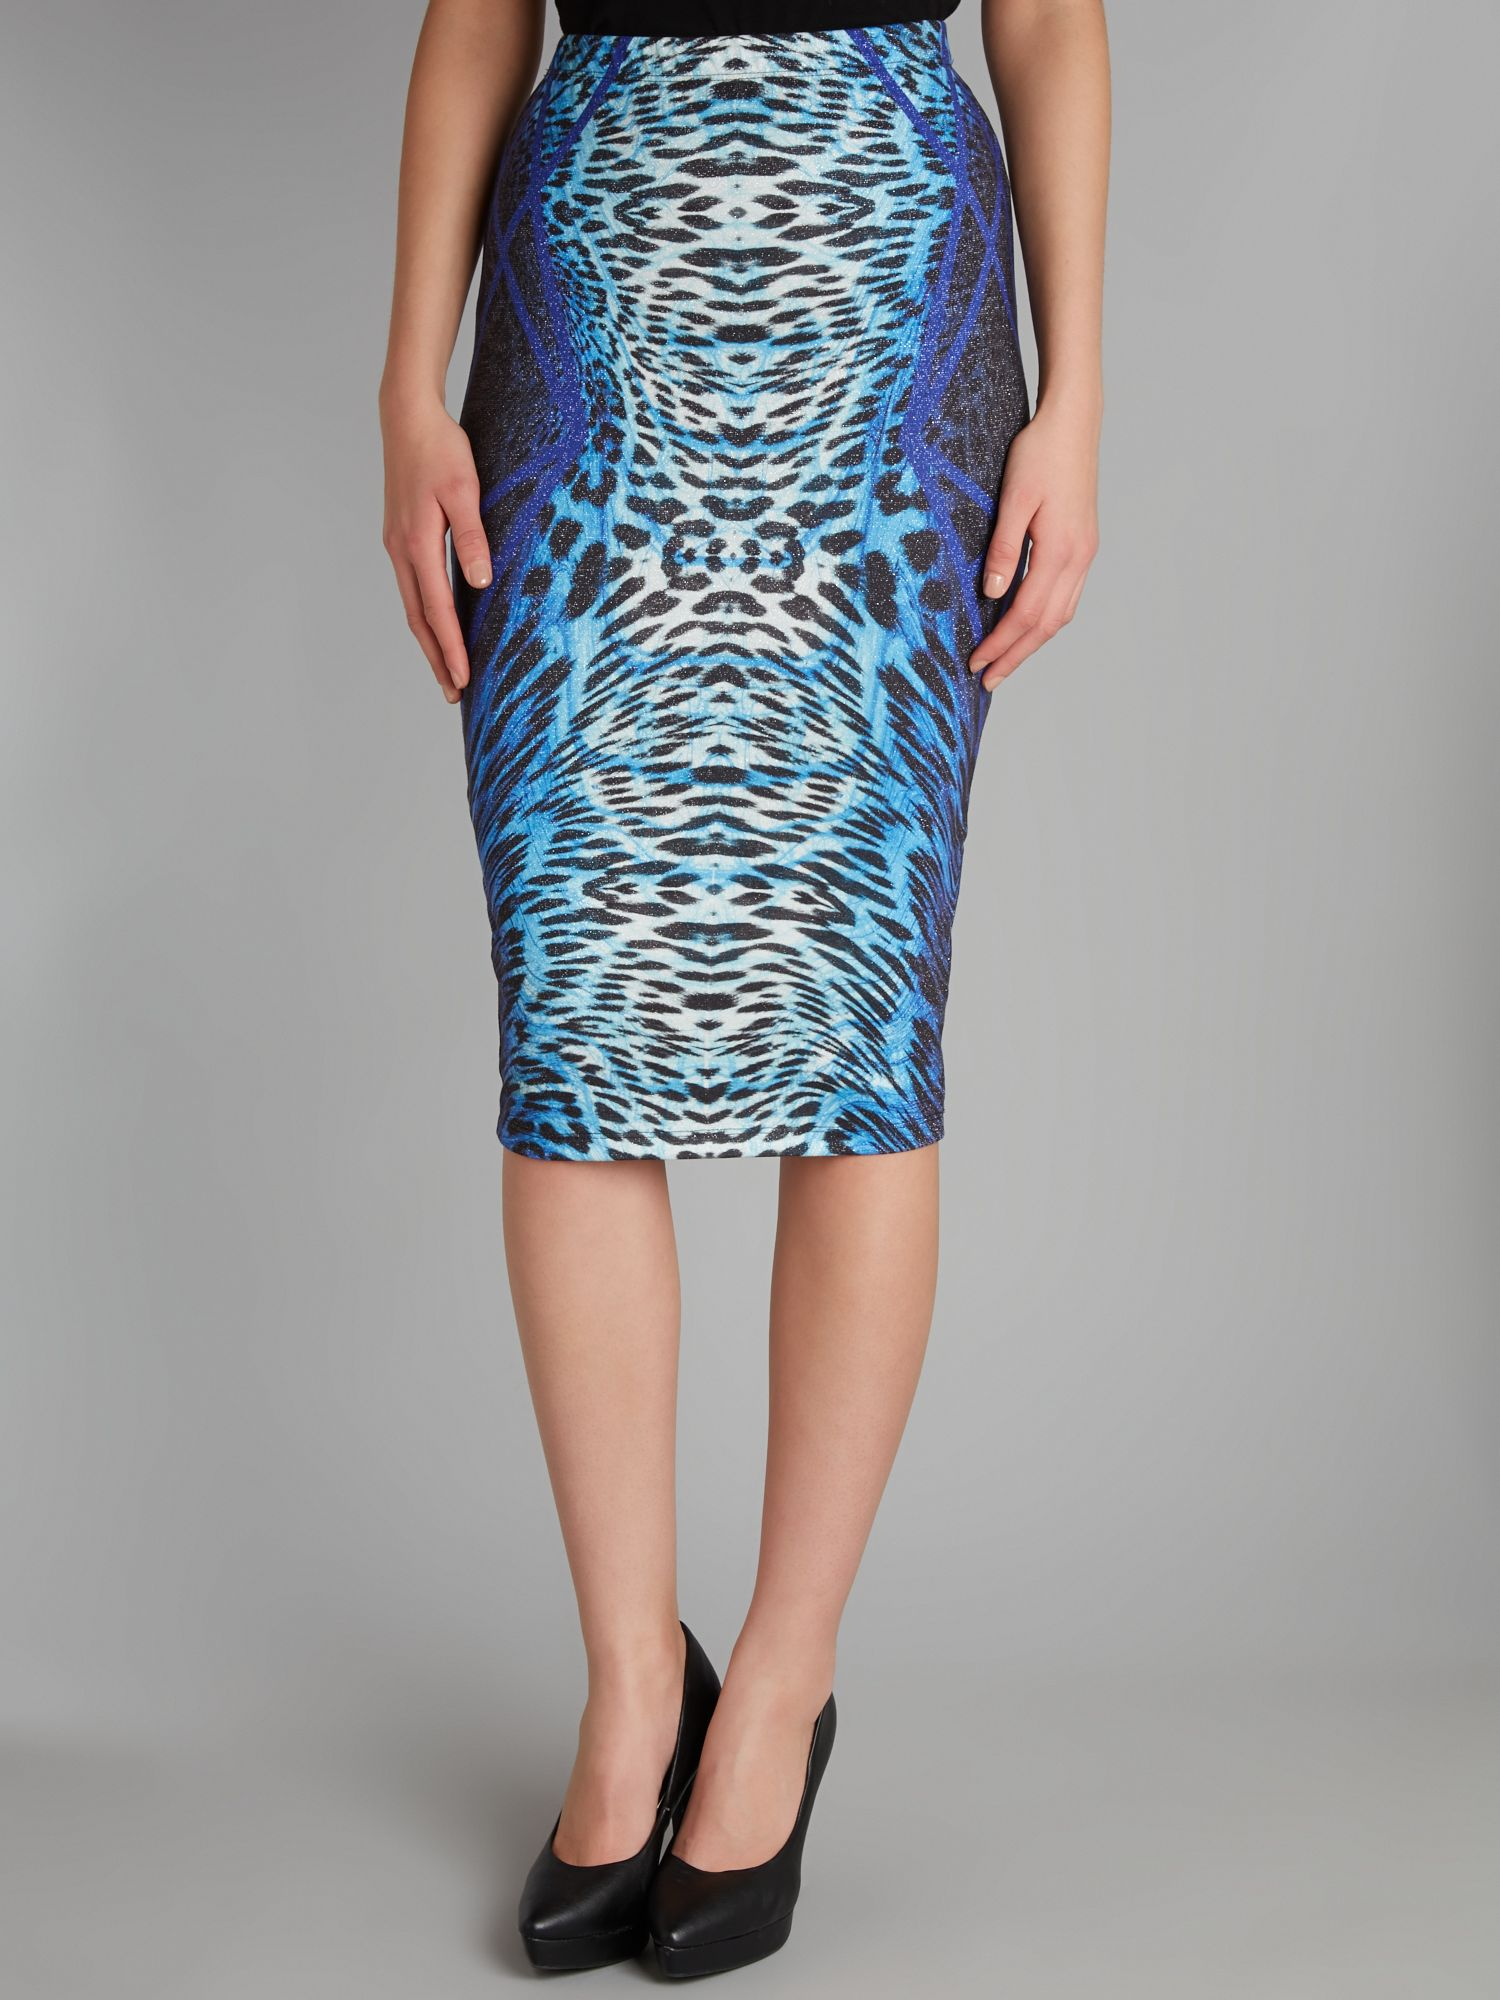 Kardashian animal print pencil skirt